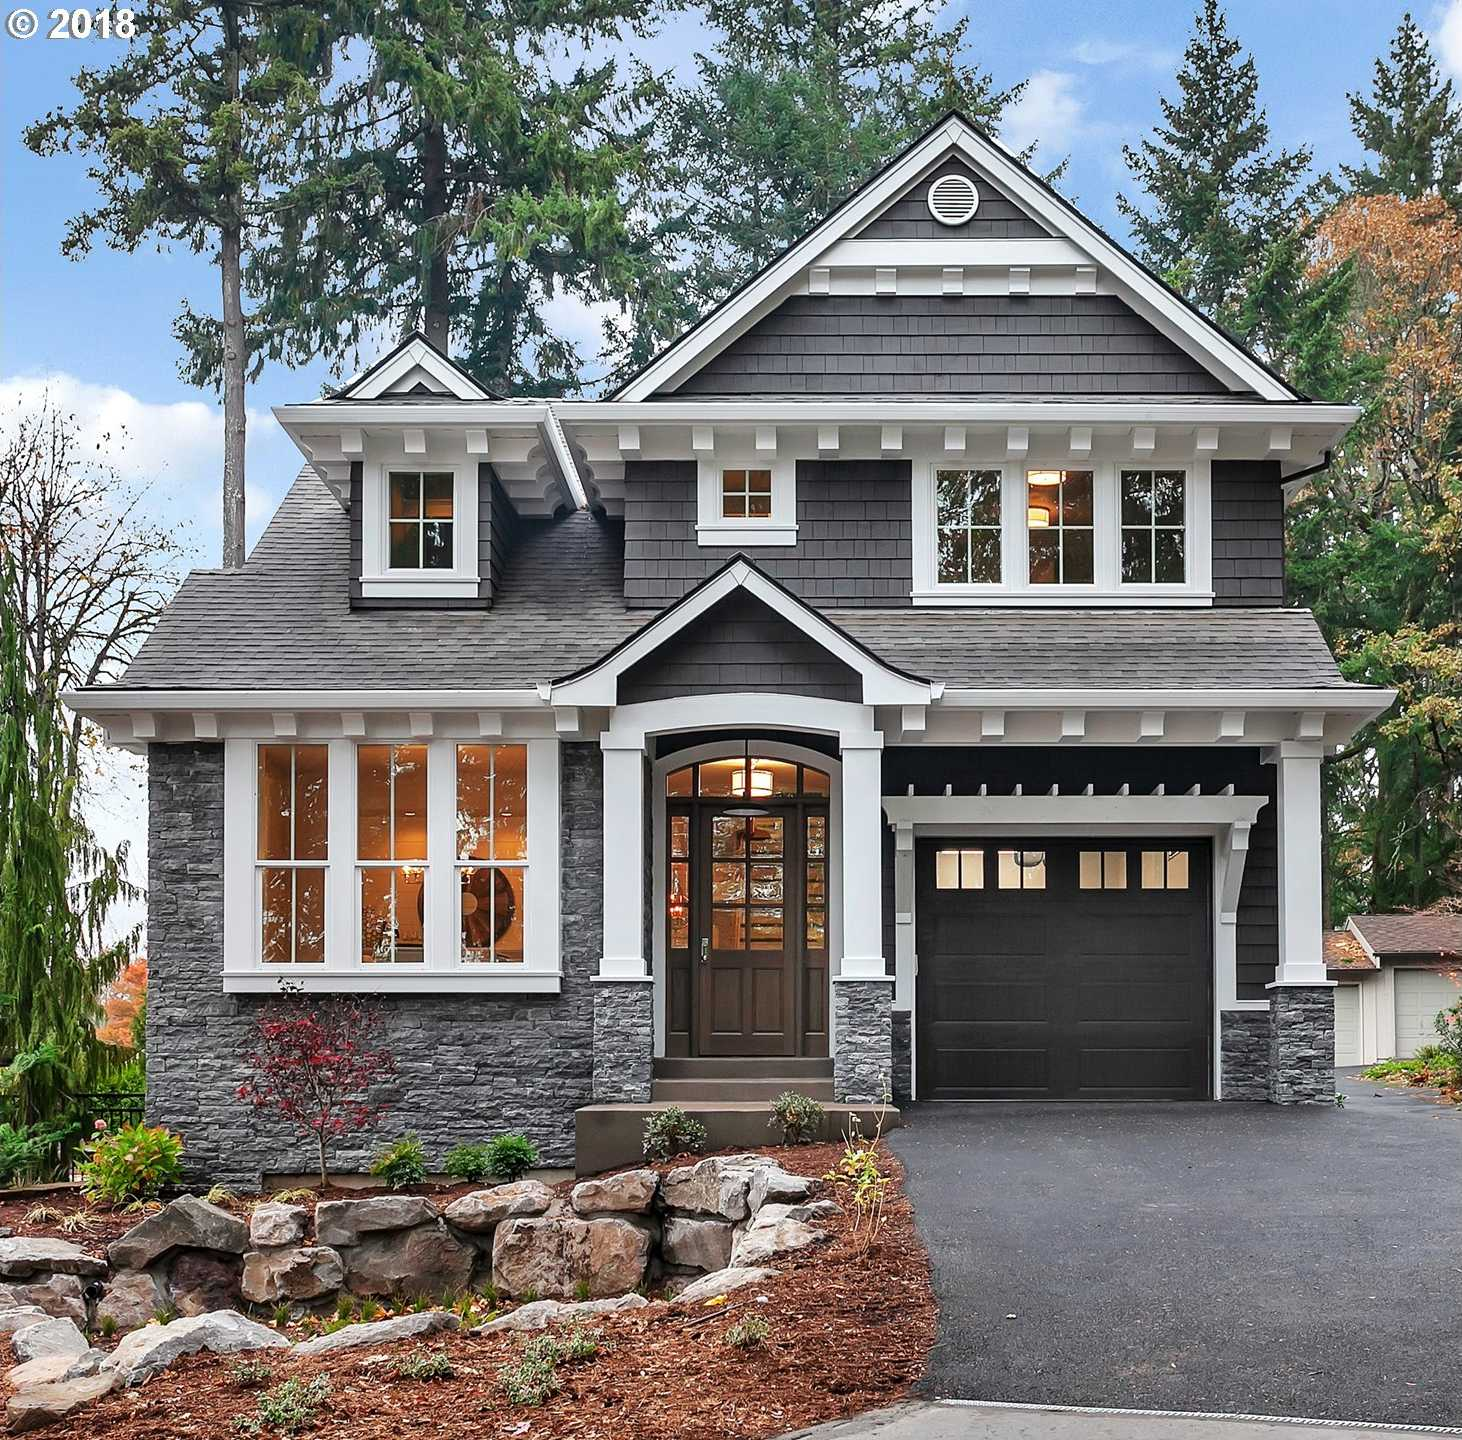 $1,375,000 - 4Br/5Ba -  for Sale in Lake Oswego